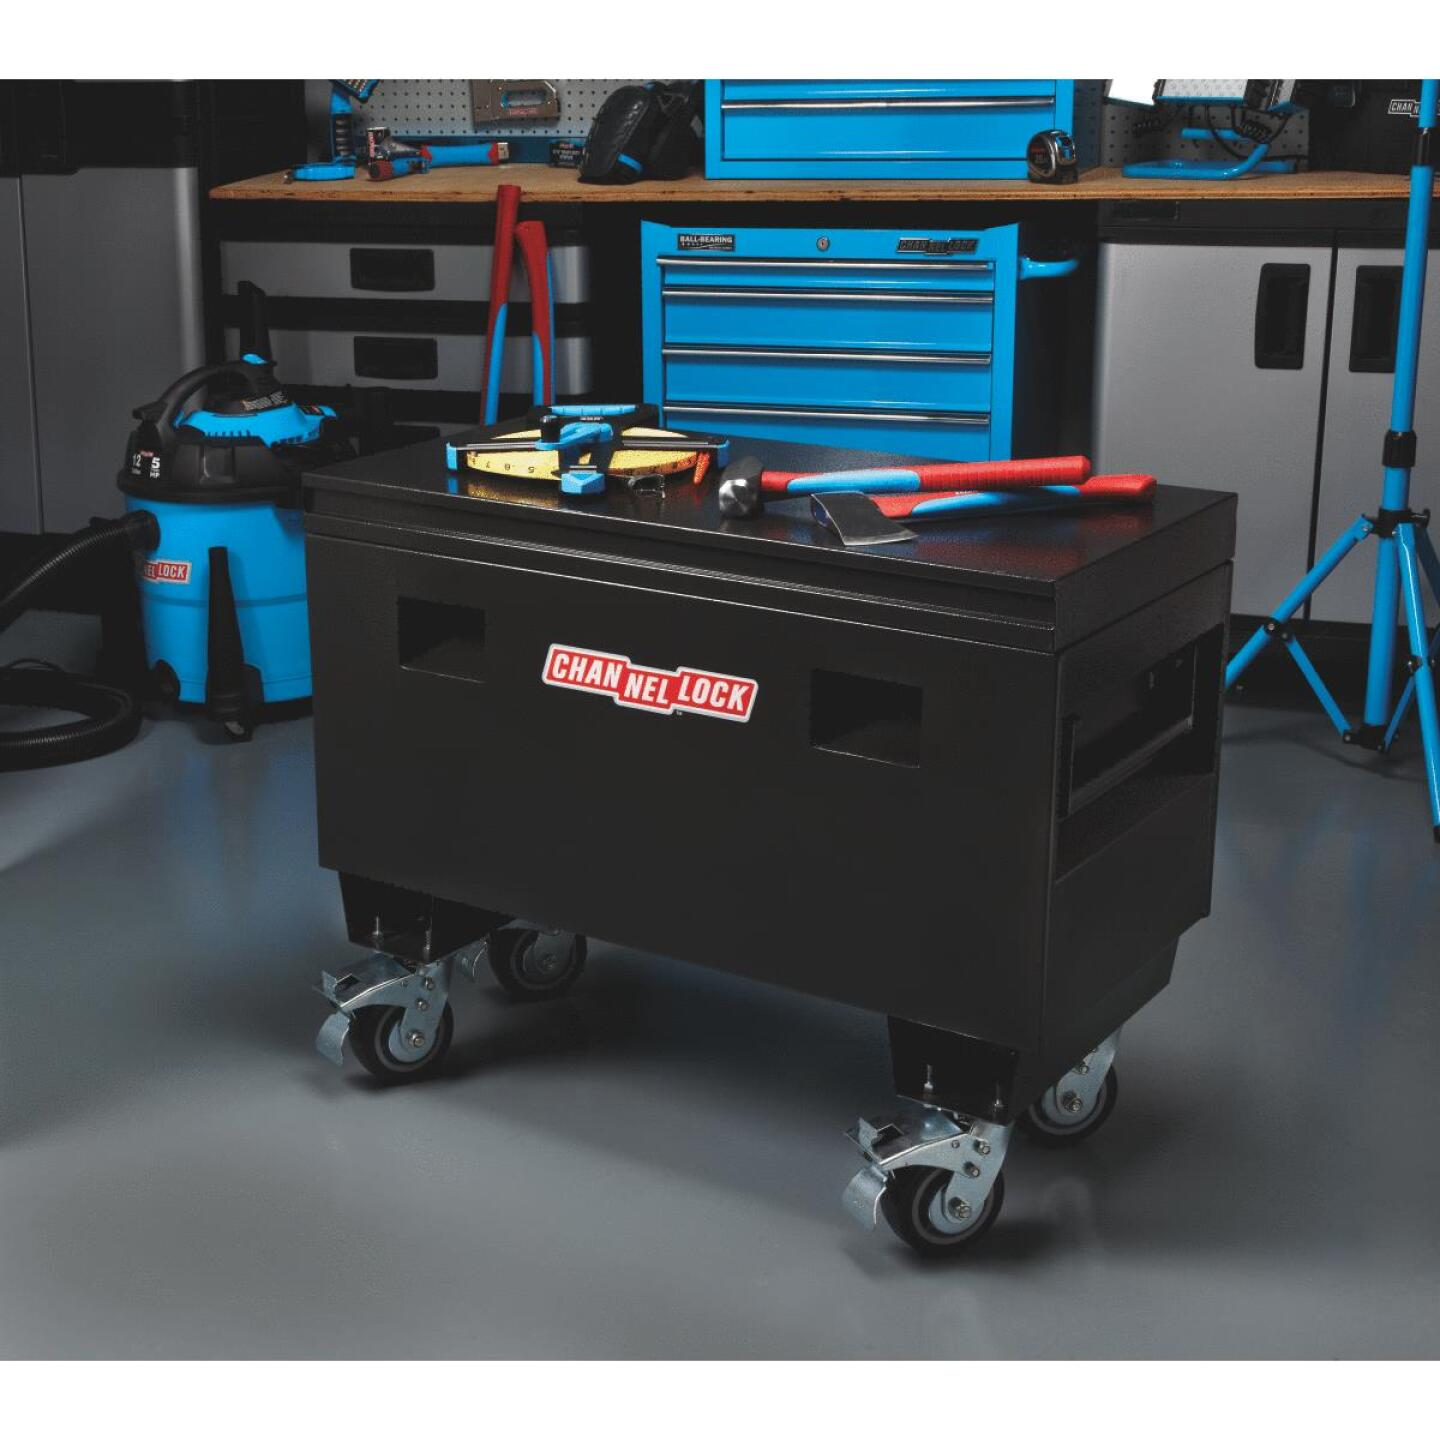 Channellock 36 In. Jobsite Toolbox Image 7